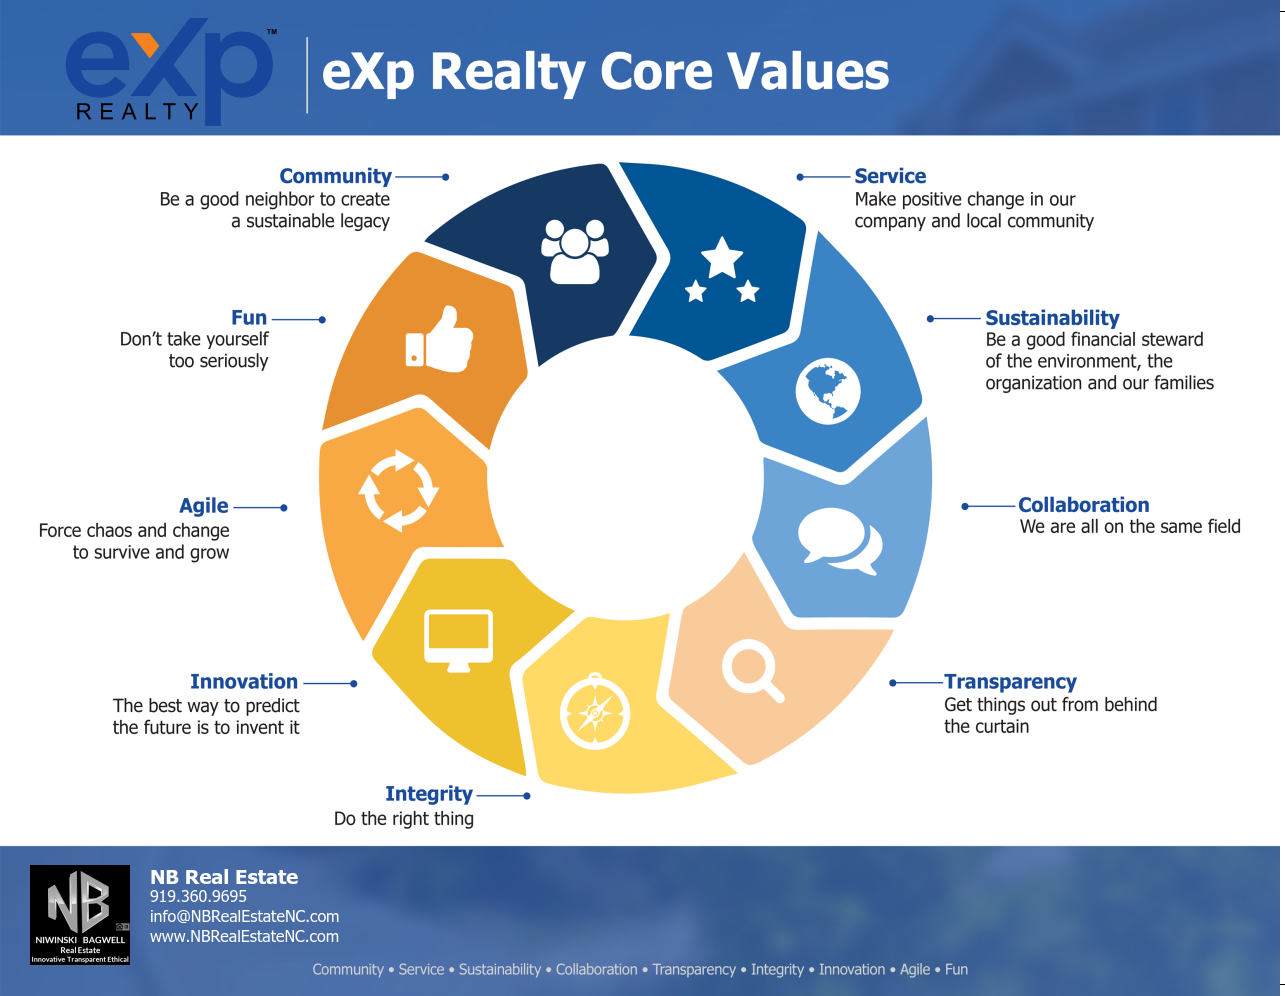 NB Branded eXp Core Values